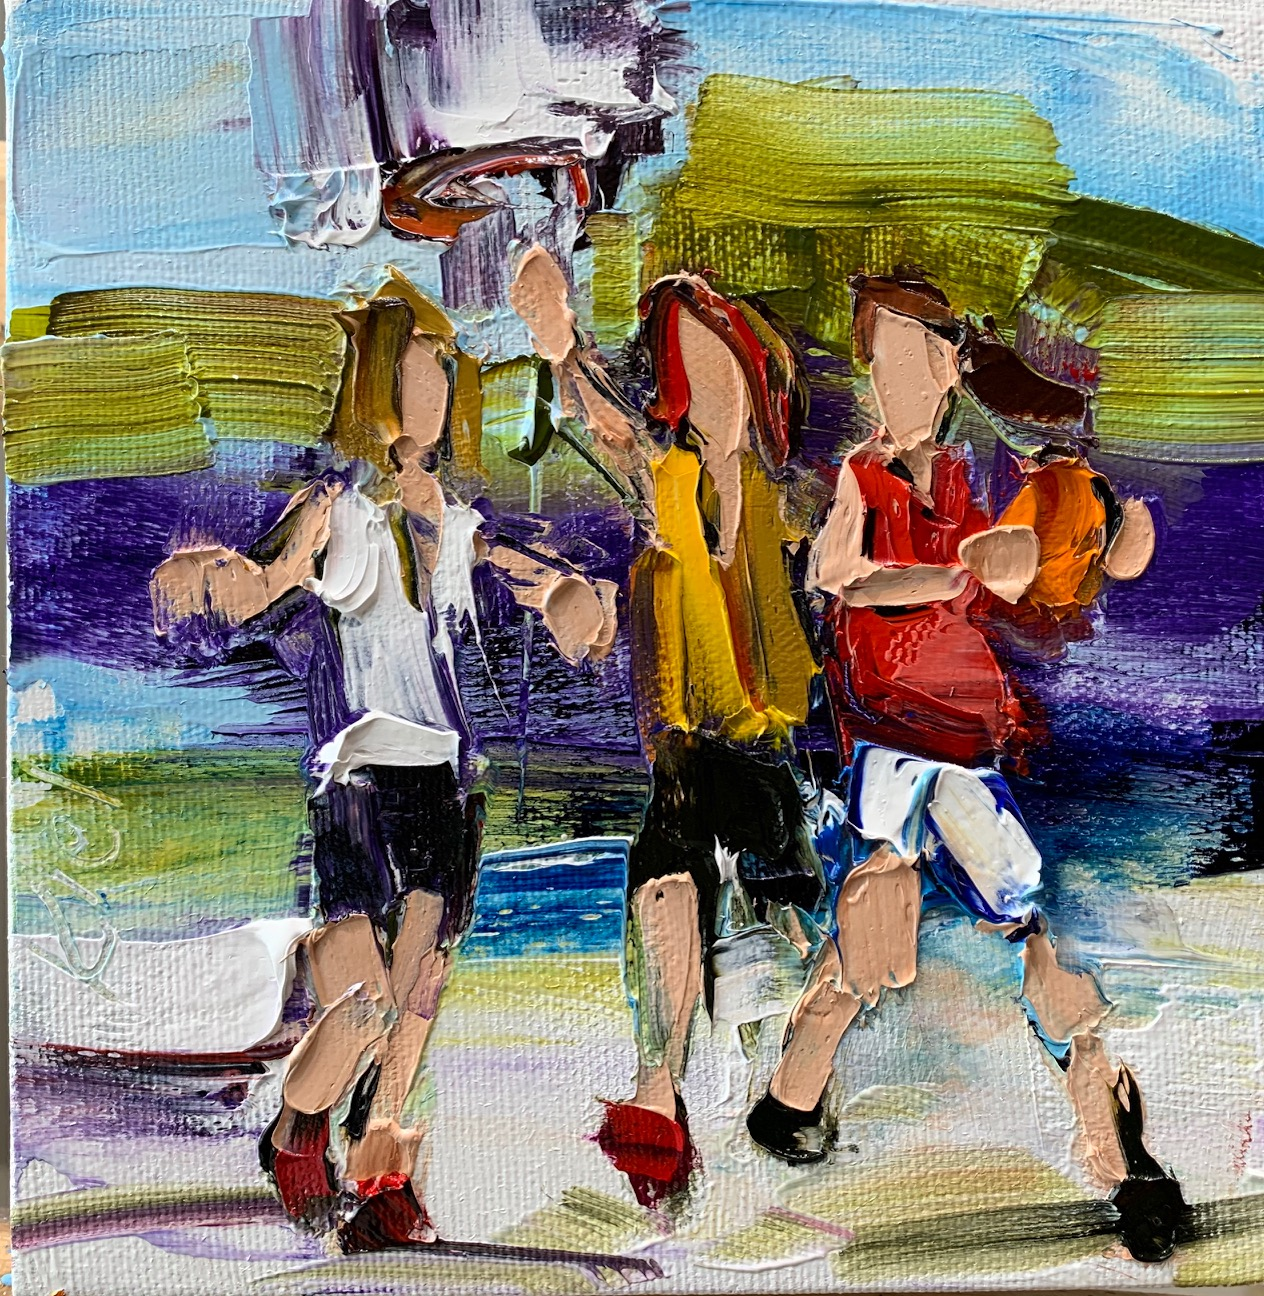 Fun in the Sun 2, oil basketball painting by Kimberly Kiel | Effusion Art Gallery + Cast Glass Studio, Invermere BC